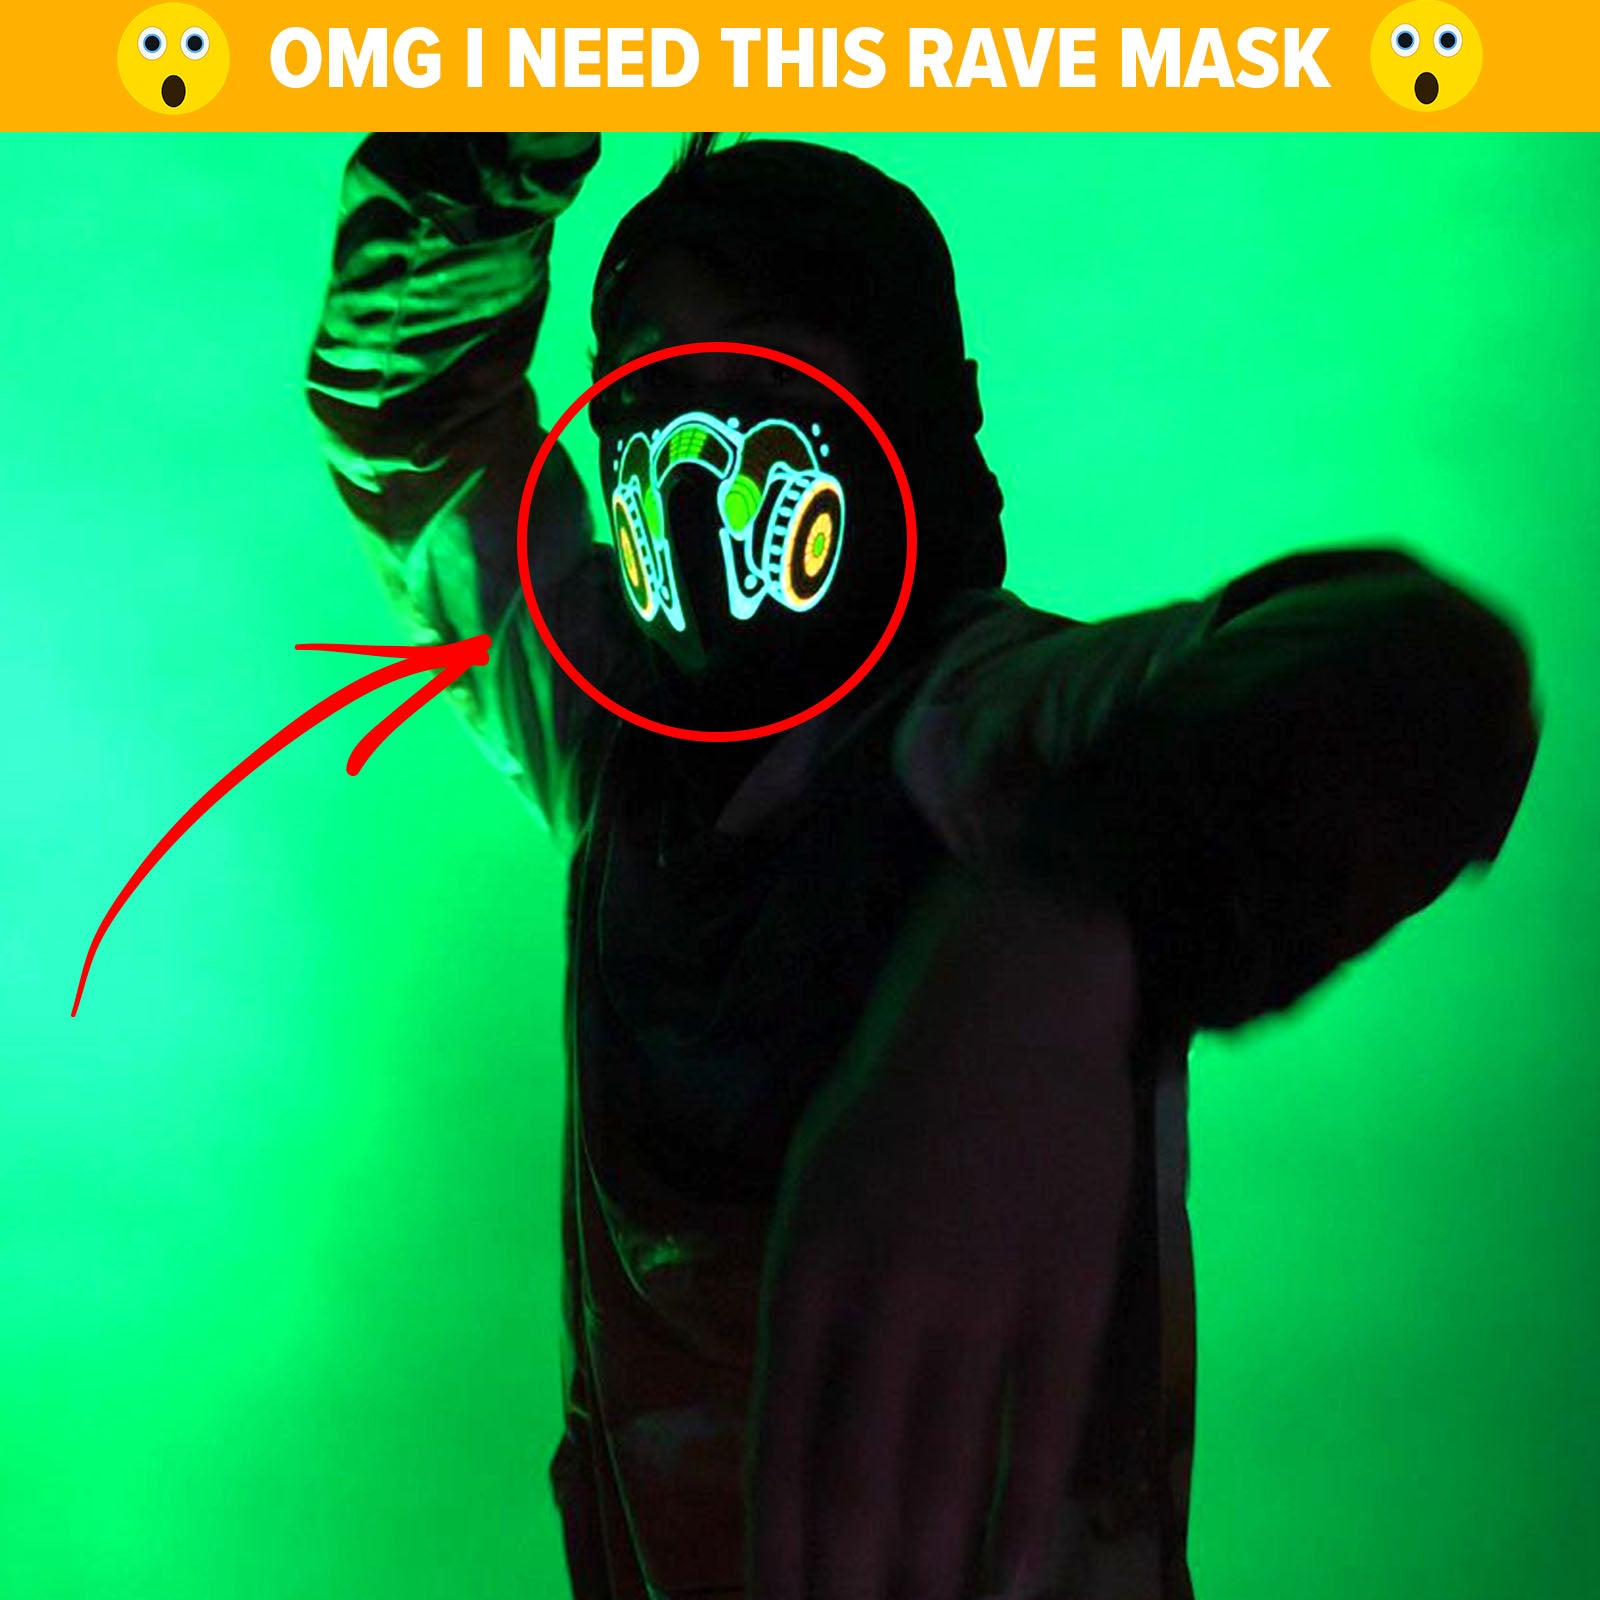 I need this LED Rave Mask